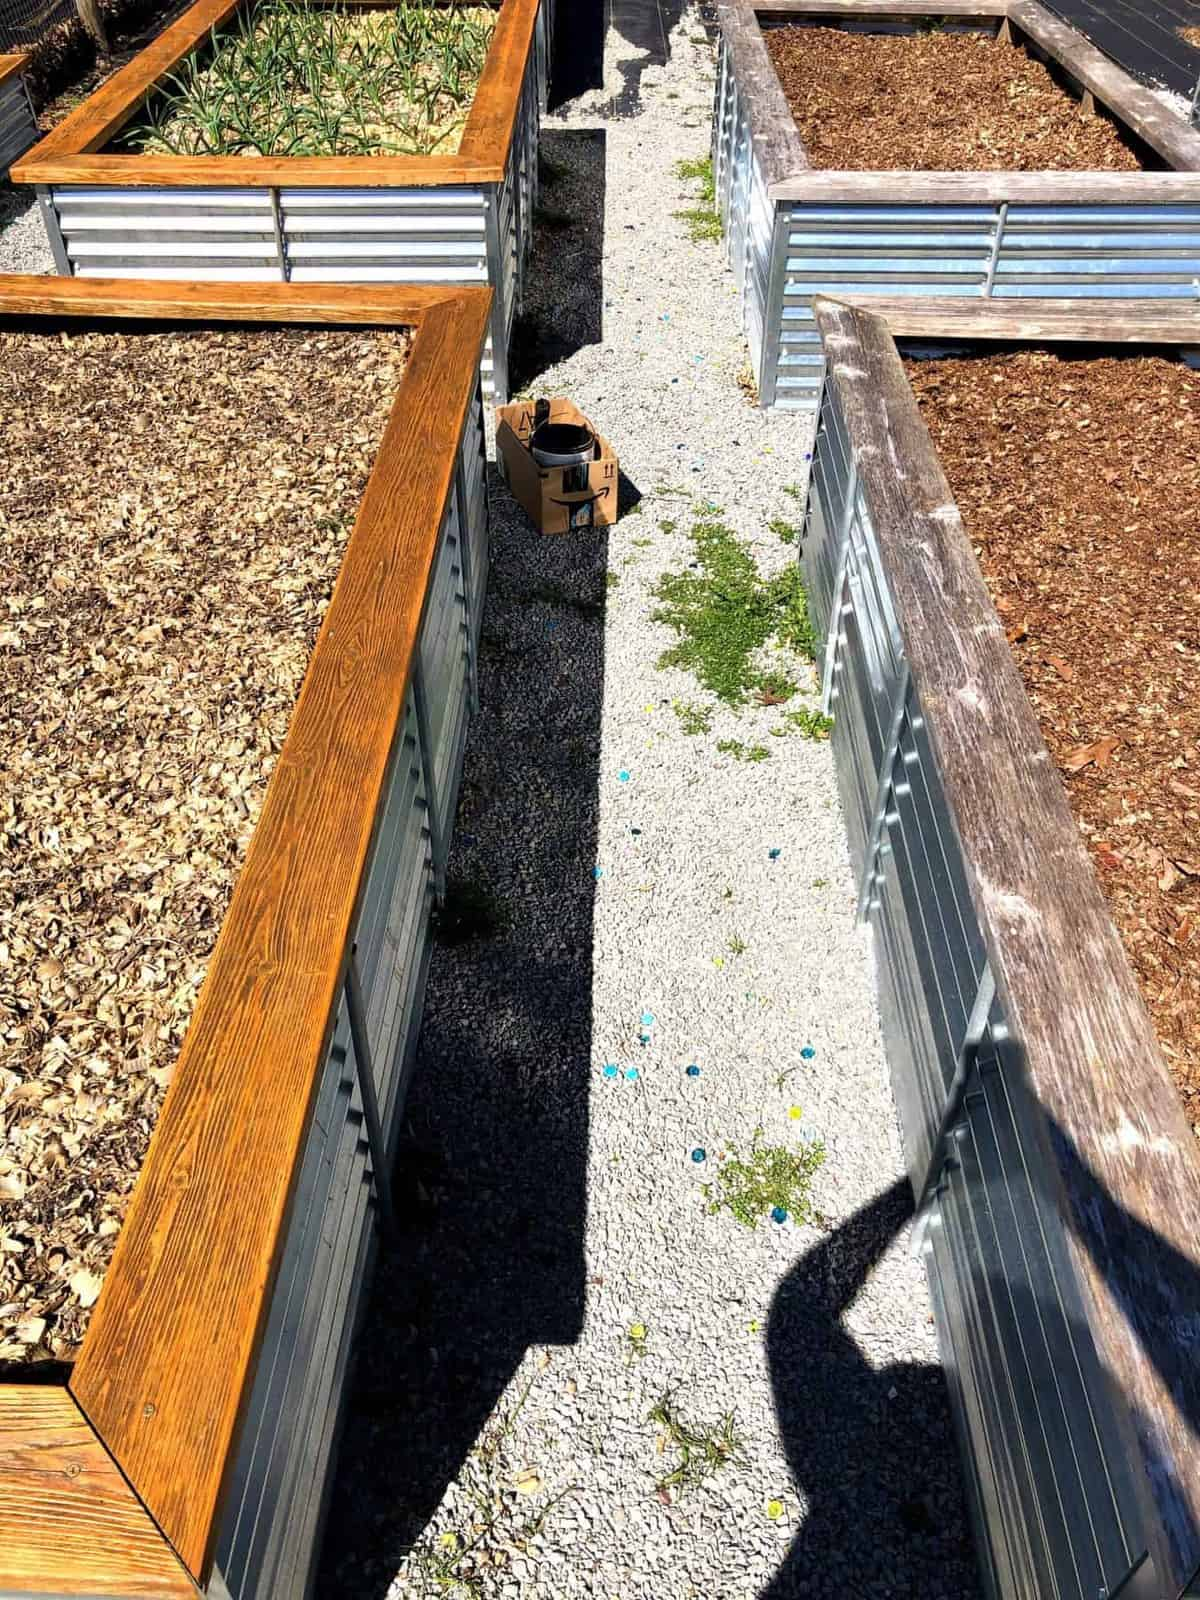 Four steel and cedar raised beds. Two of the beds have had stain applied to the cedar.